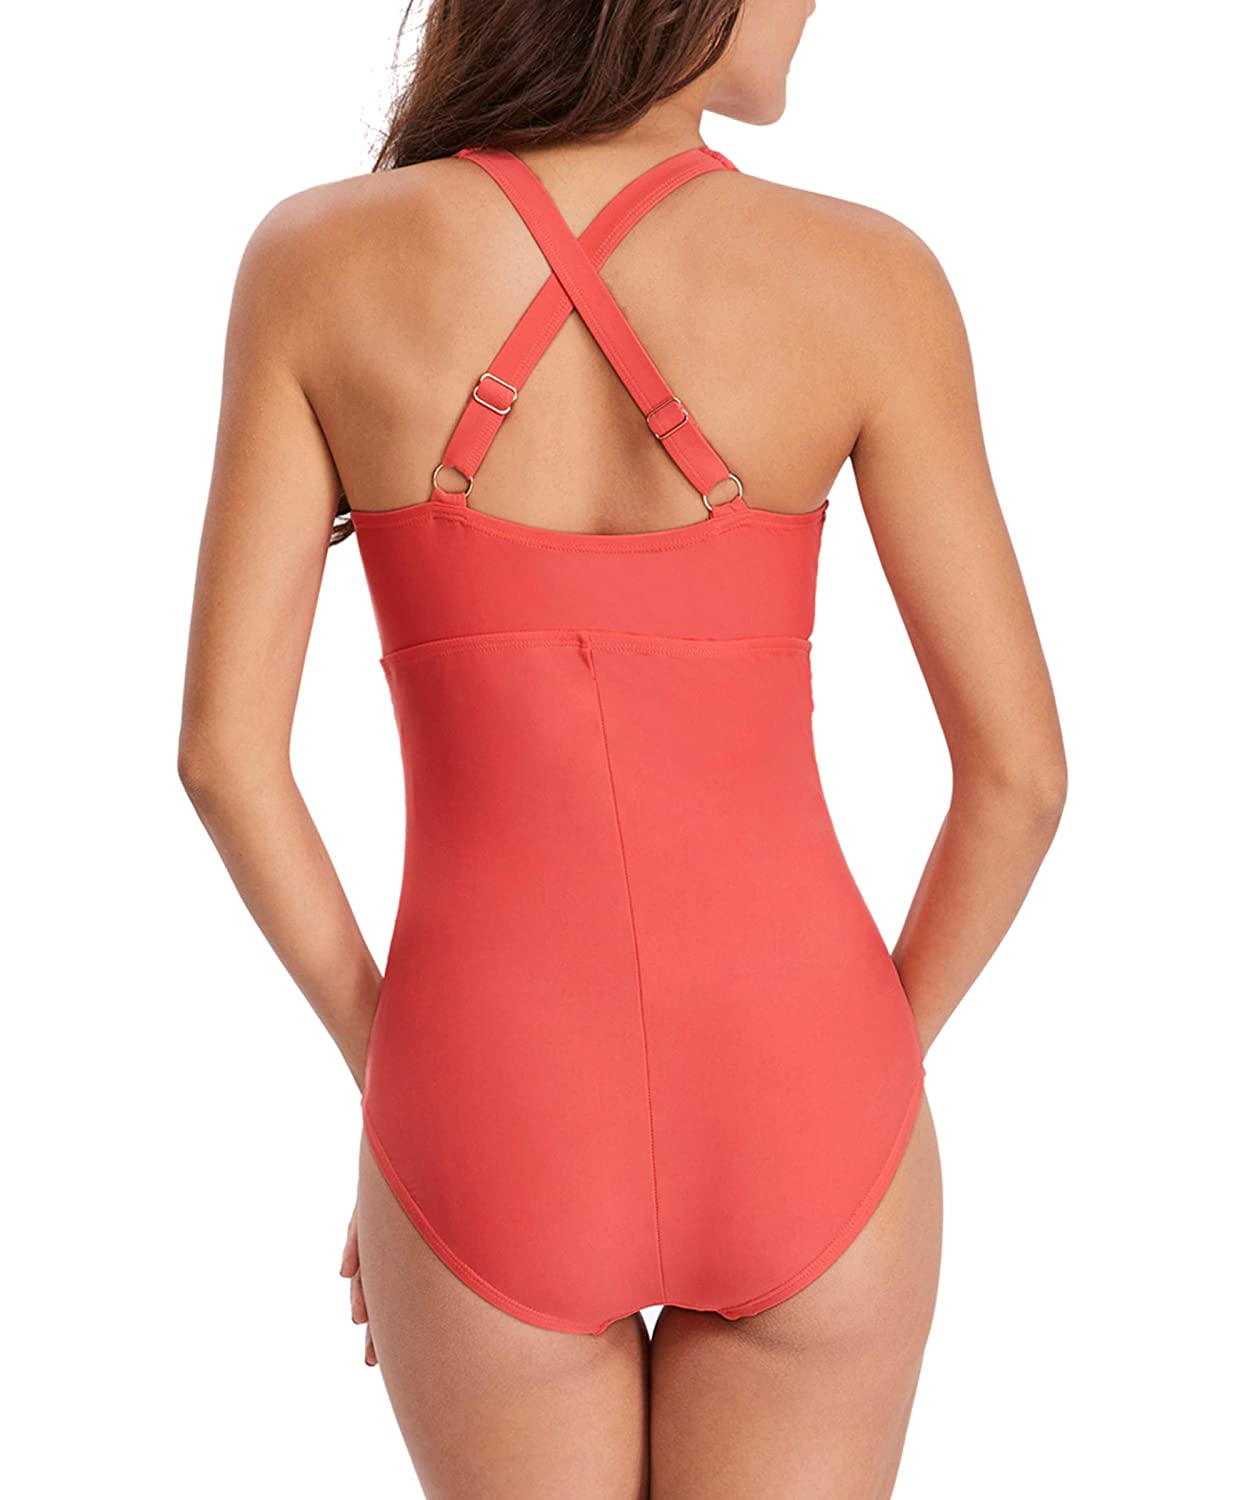 Zando One Piece Swimsuits for Women Pure Color Tummy Control Swimming Suit Bathing Suits Monokinis MNFUBS2790G0000